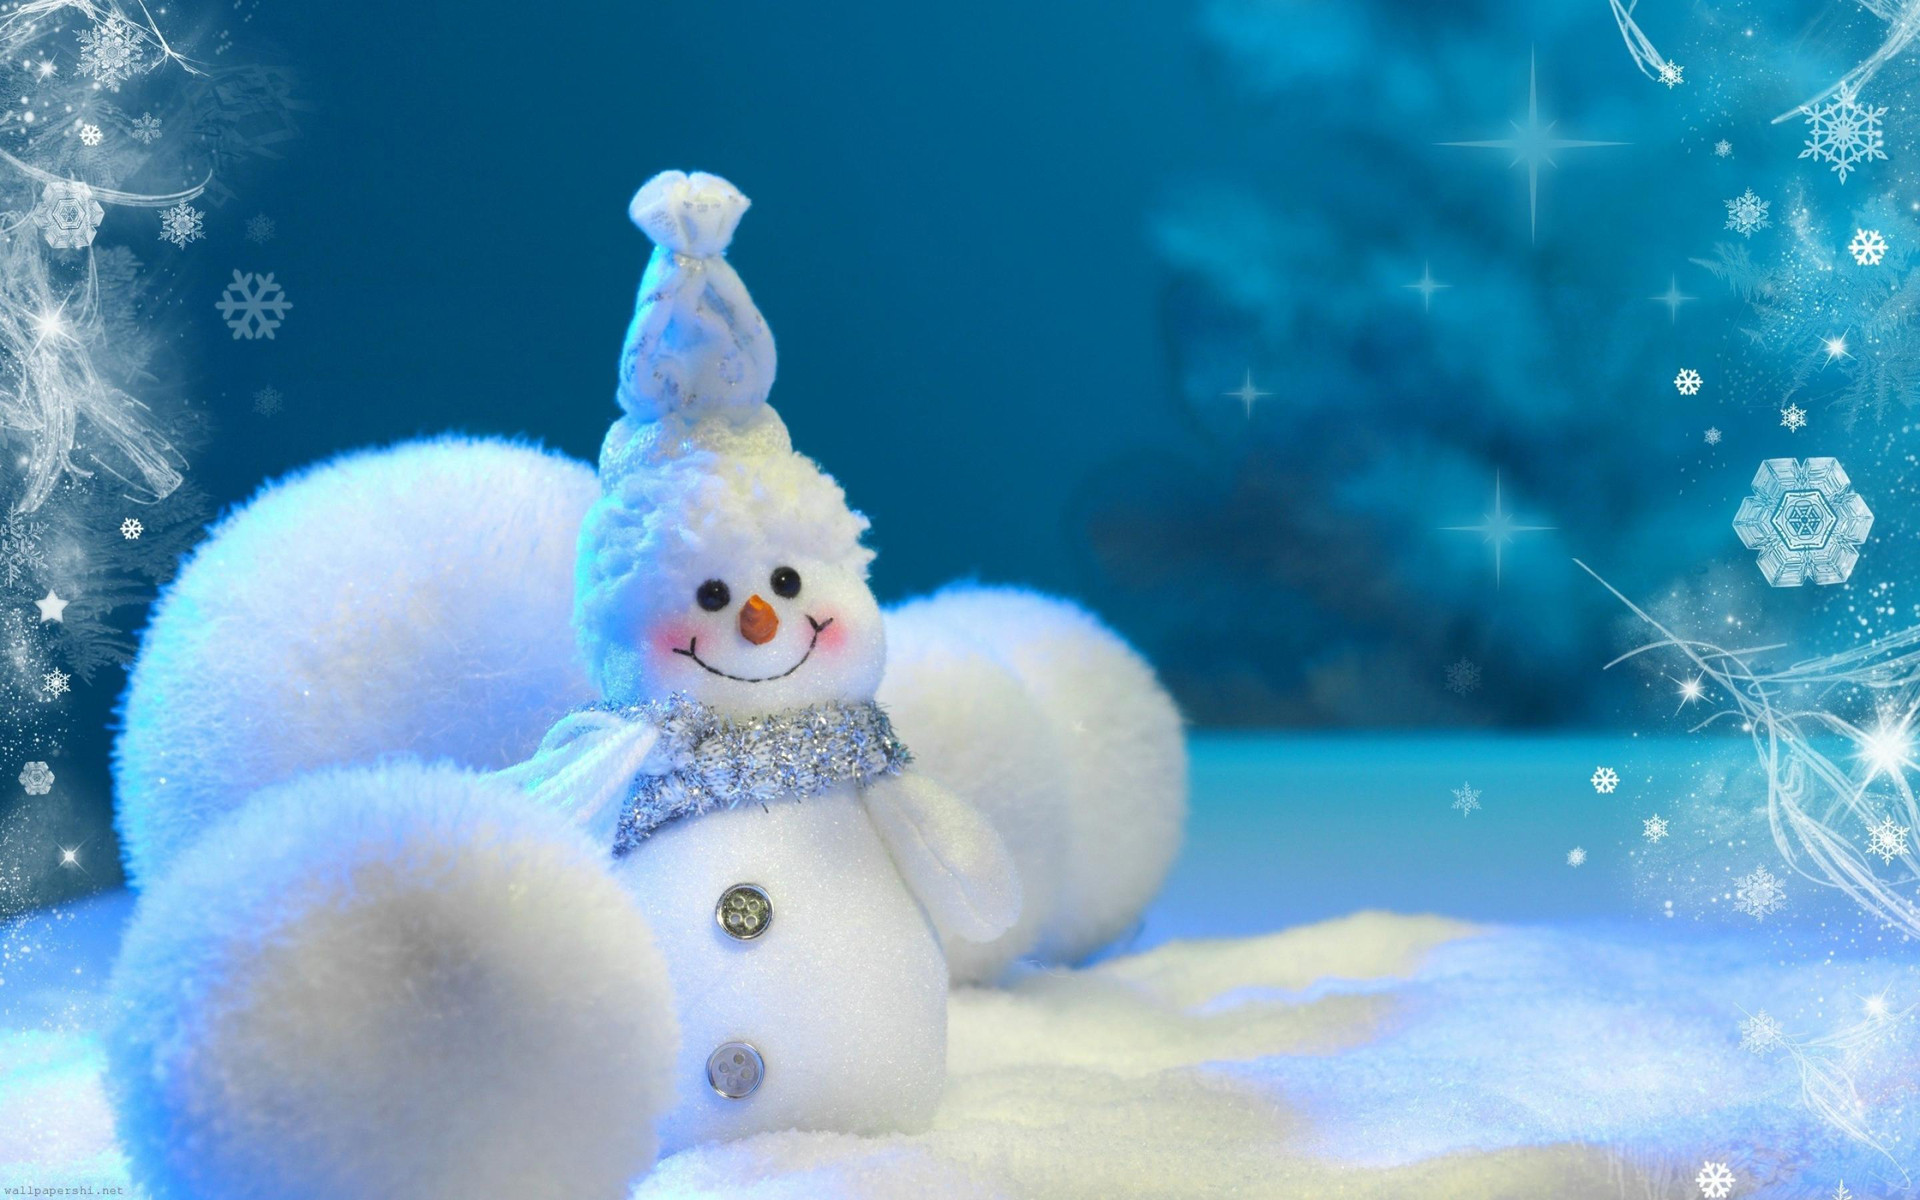 Winter   HD Wallpapers   Pictures   Images   Backgrounds   Photos